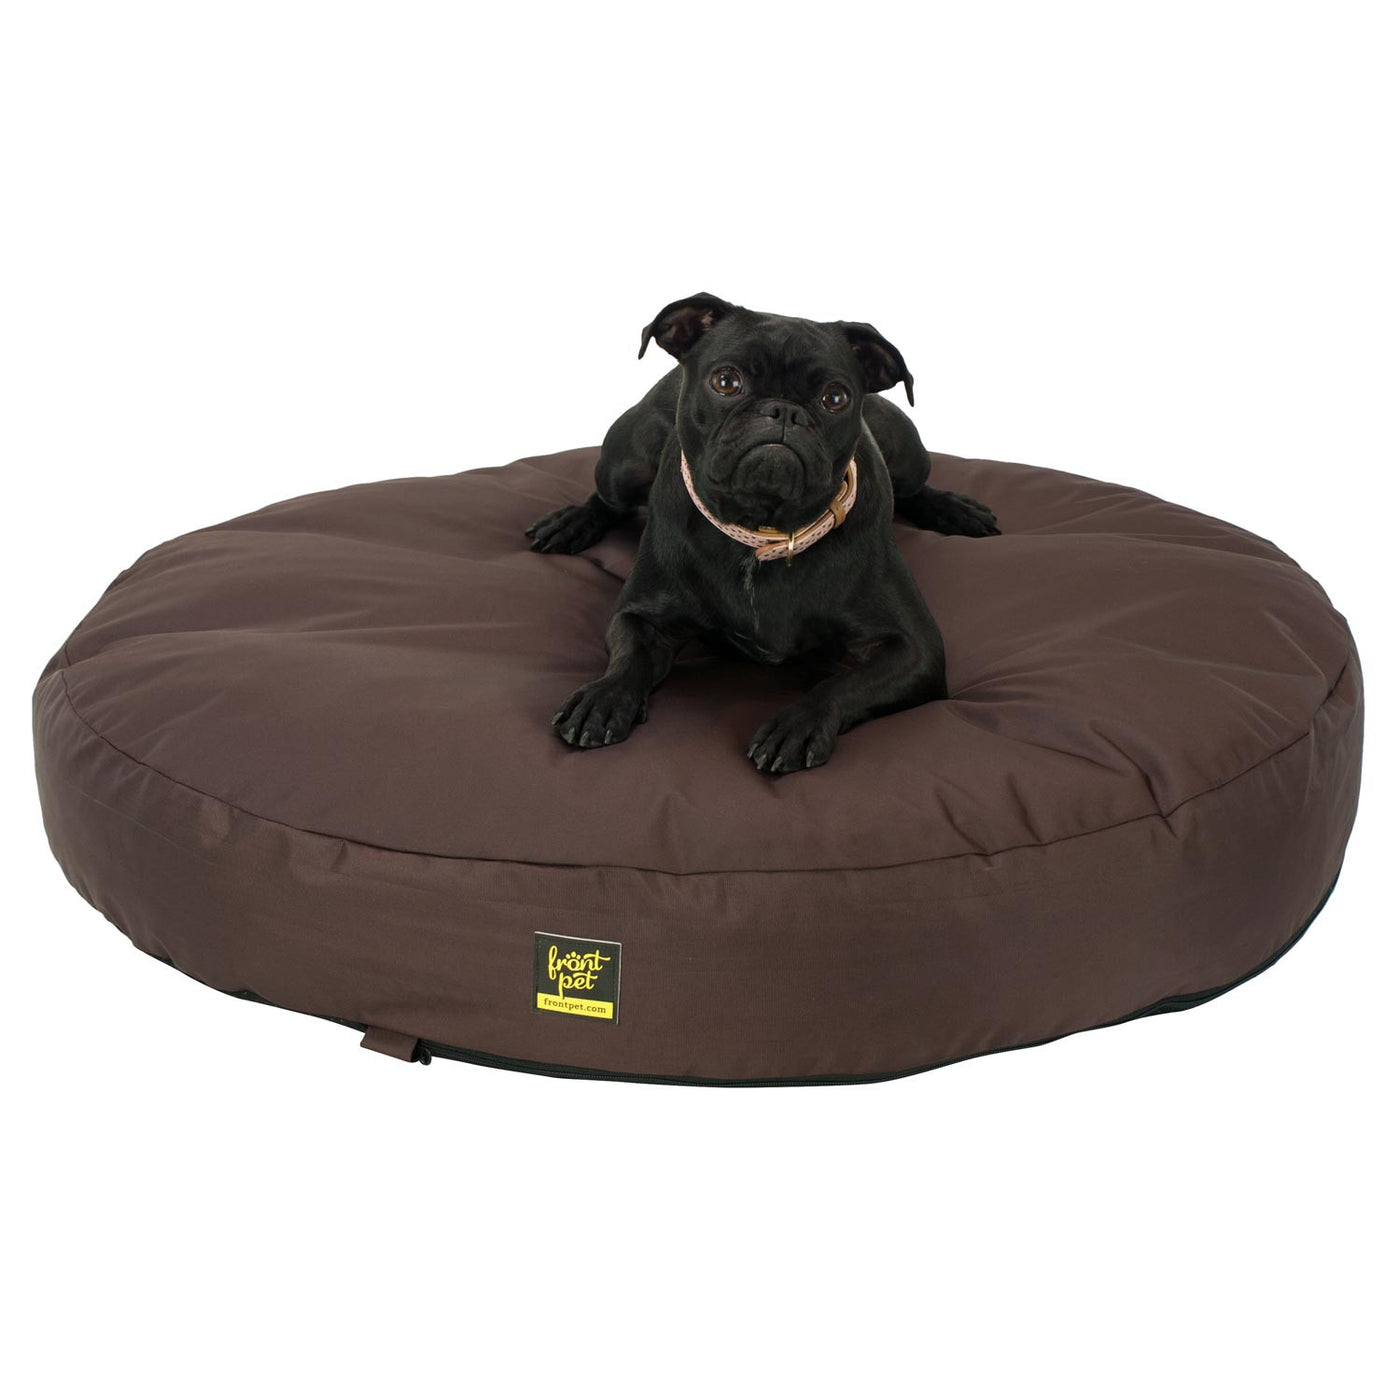 Chew proof dog bed round memory foam dog bed frontpetcom for Dog resistant bedding